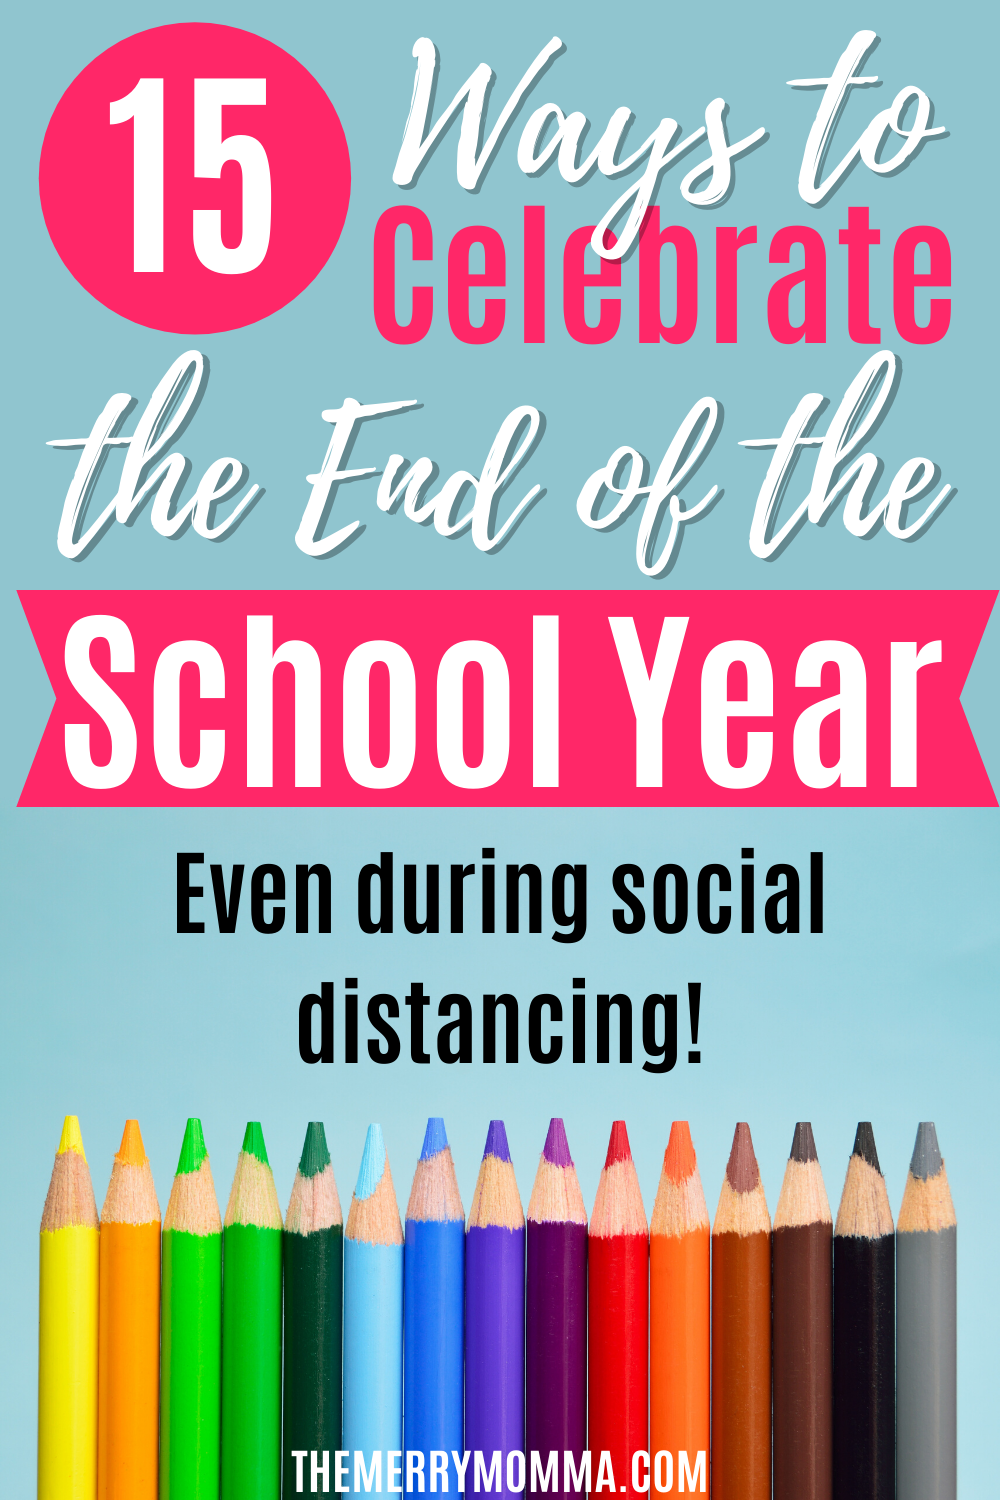 15 Ways to Celebrate the End of the School Year